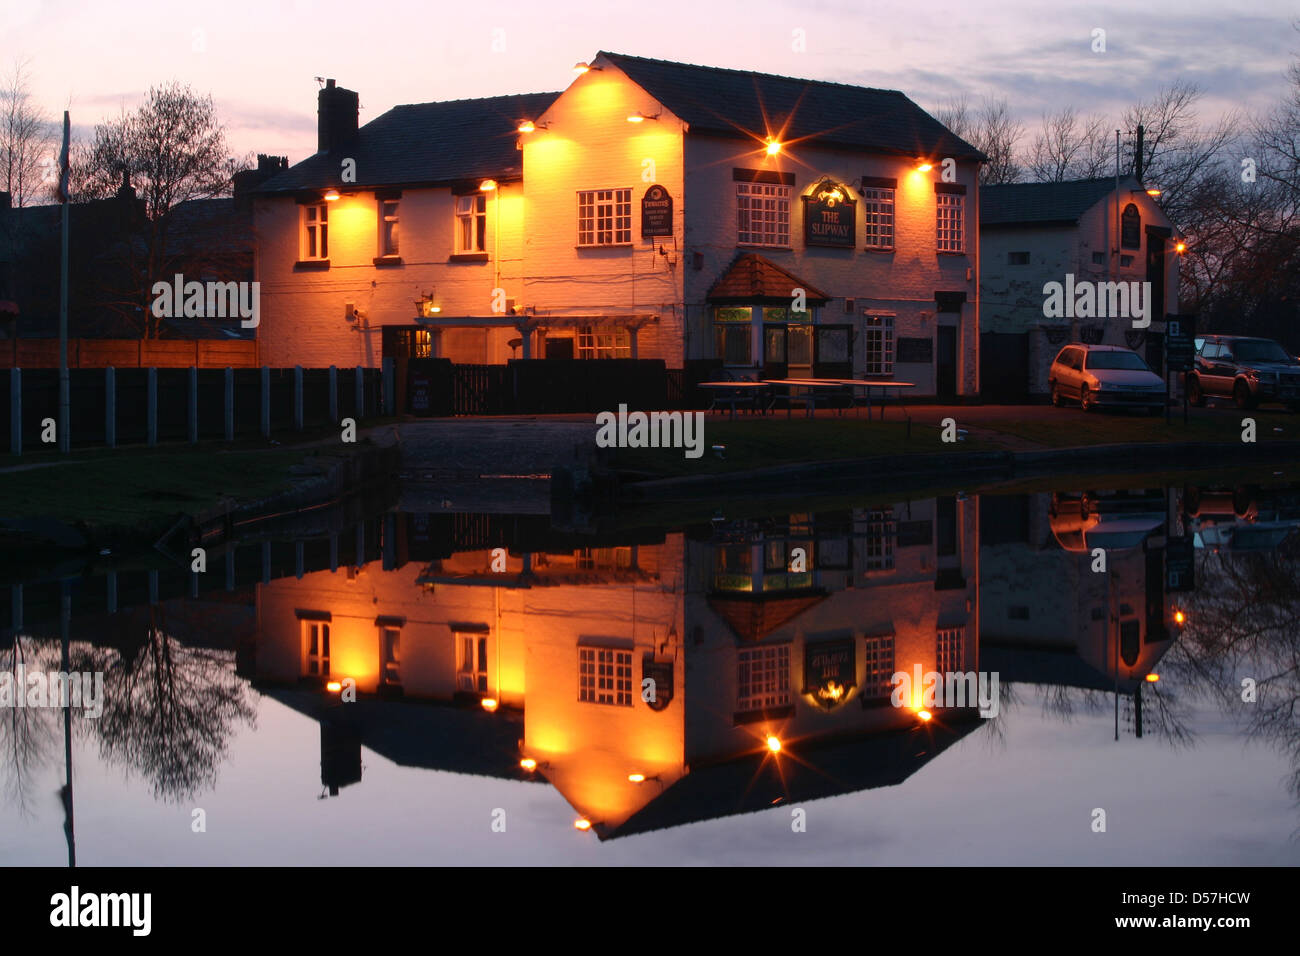 The Slipway pub reflected in the Leeds and Liverpool canal at Dusk - Stock Image